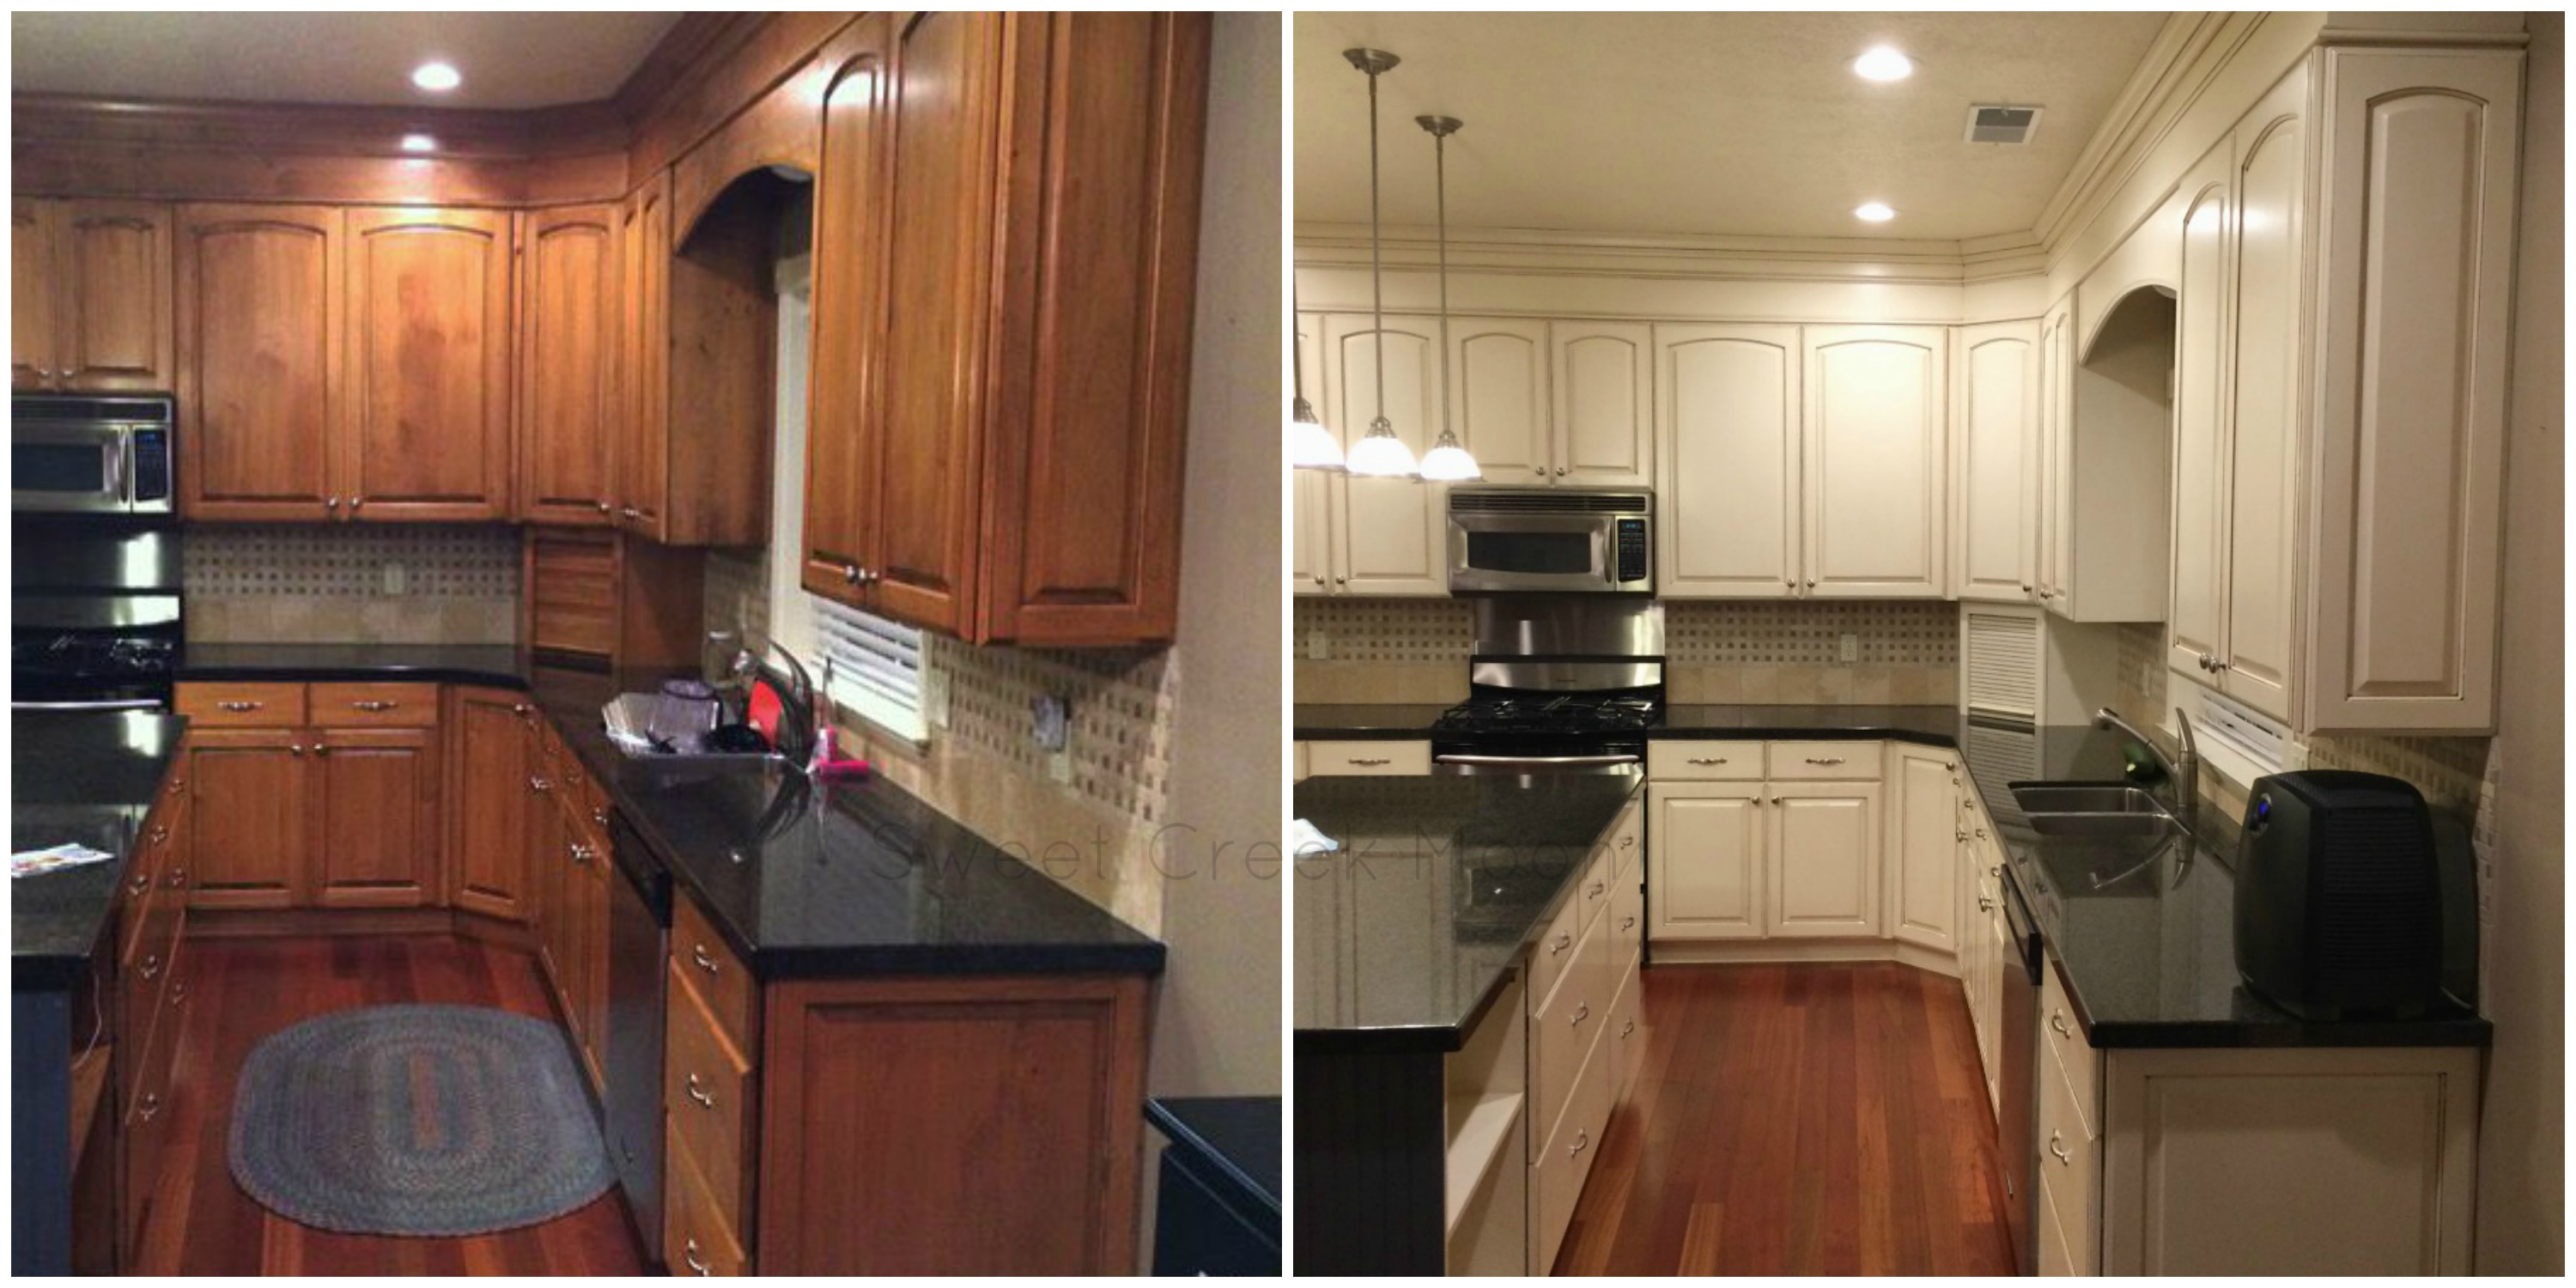 Kitchen Cabinet Makeovers Before And After kitchen cabinet makeover | 2015 - sweet creek moon